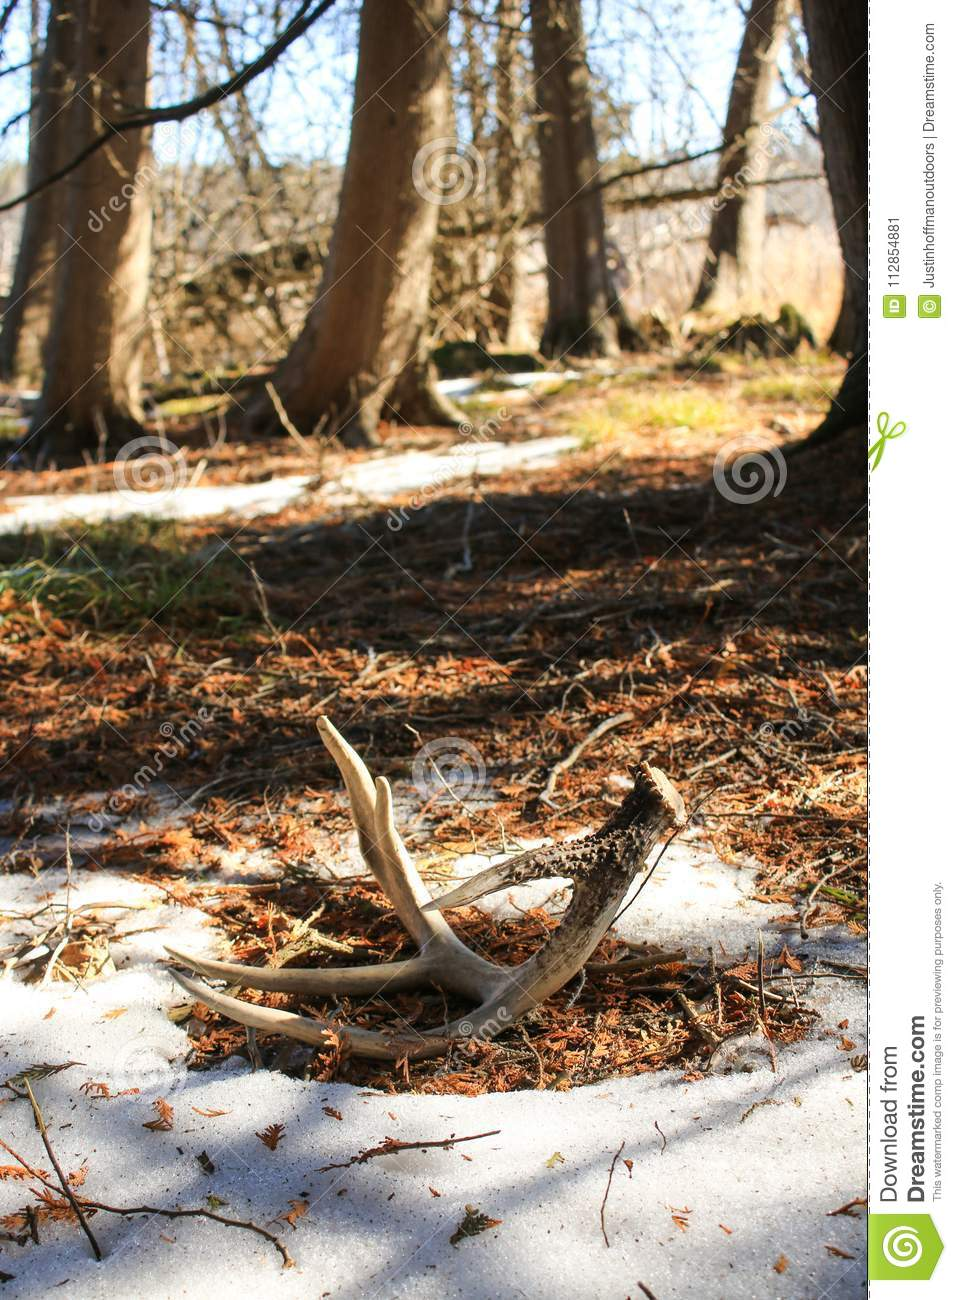 Whitetail Deer Shed Antler on Ground in Forest